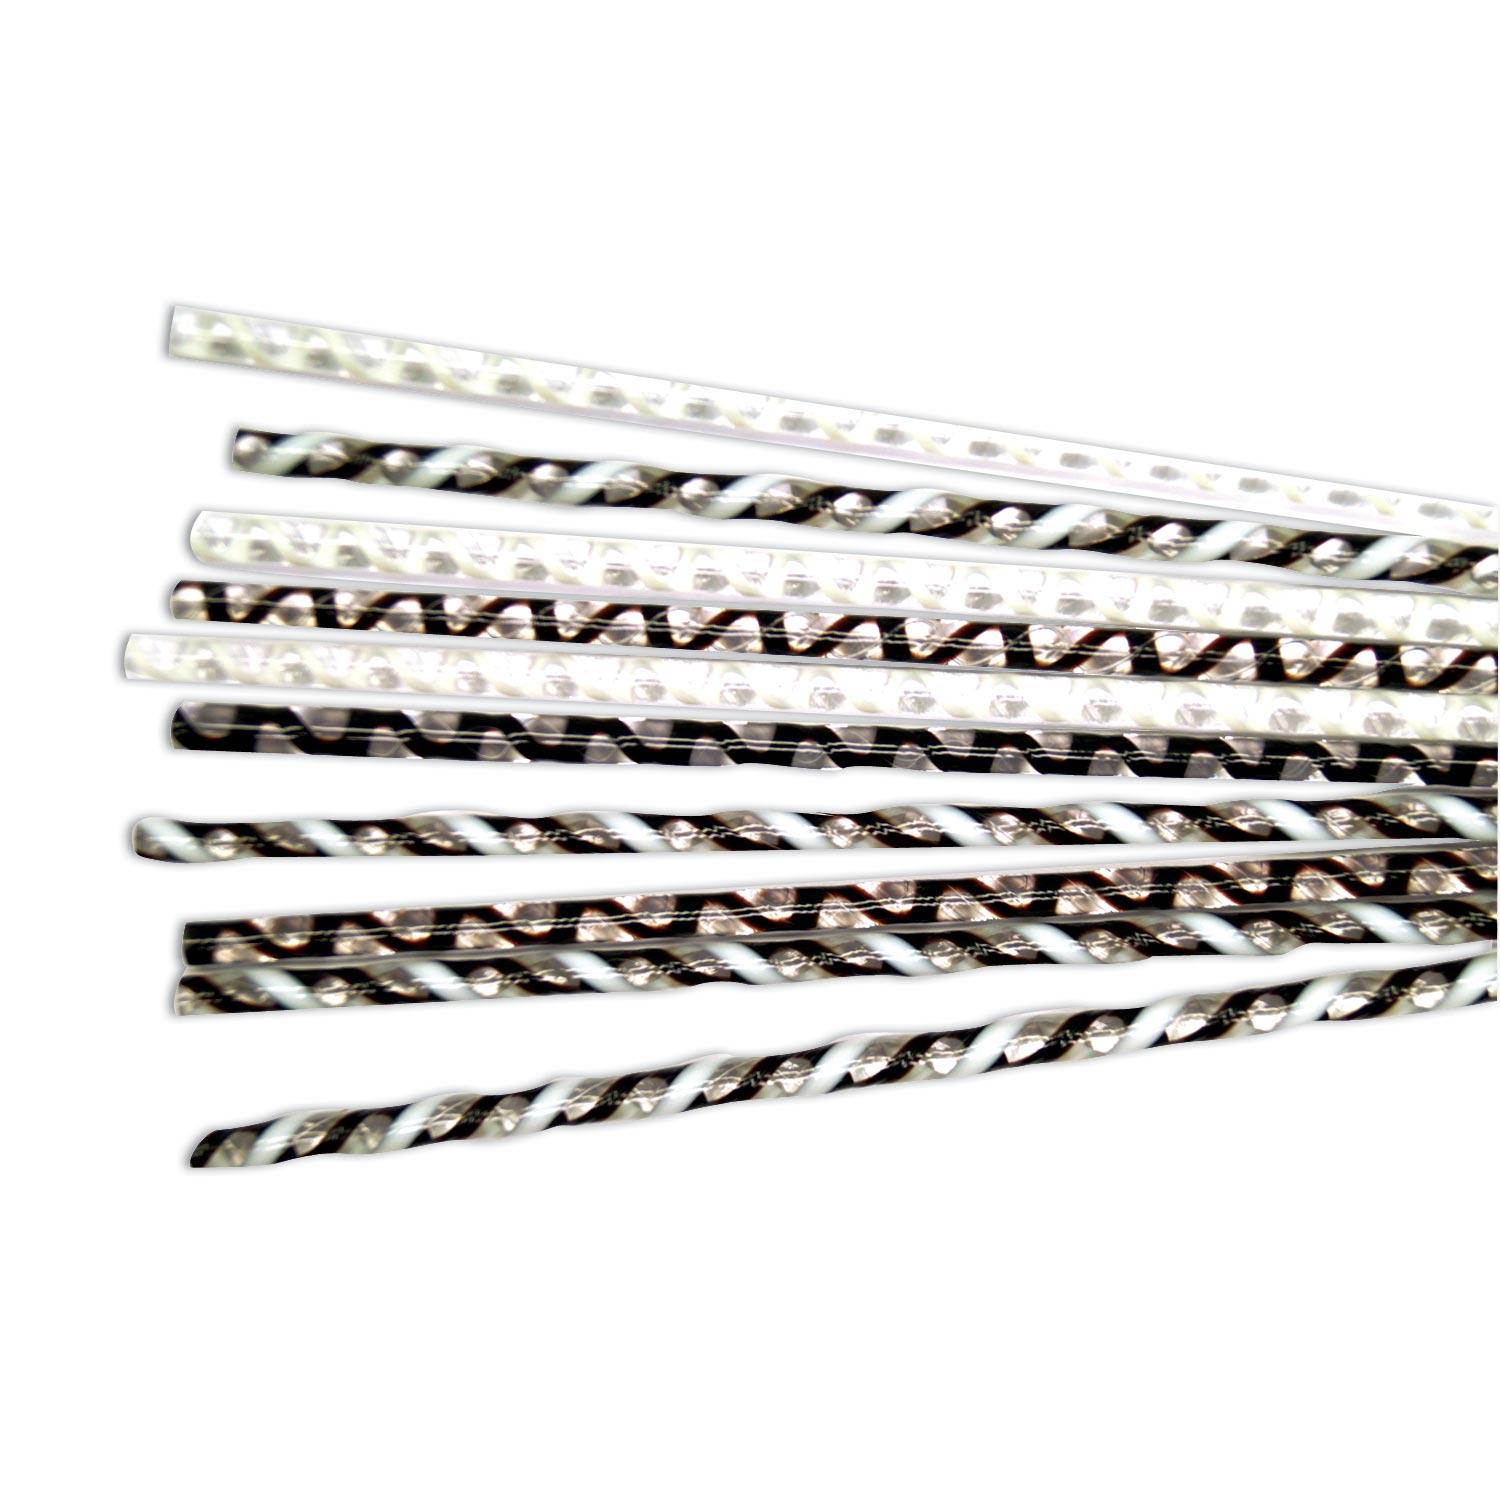 Tuxedo Twisted Cane Assortment - 96 COE